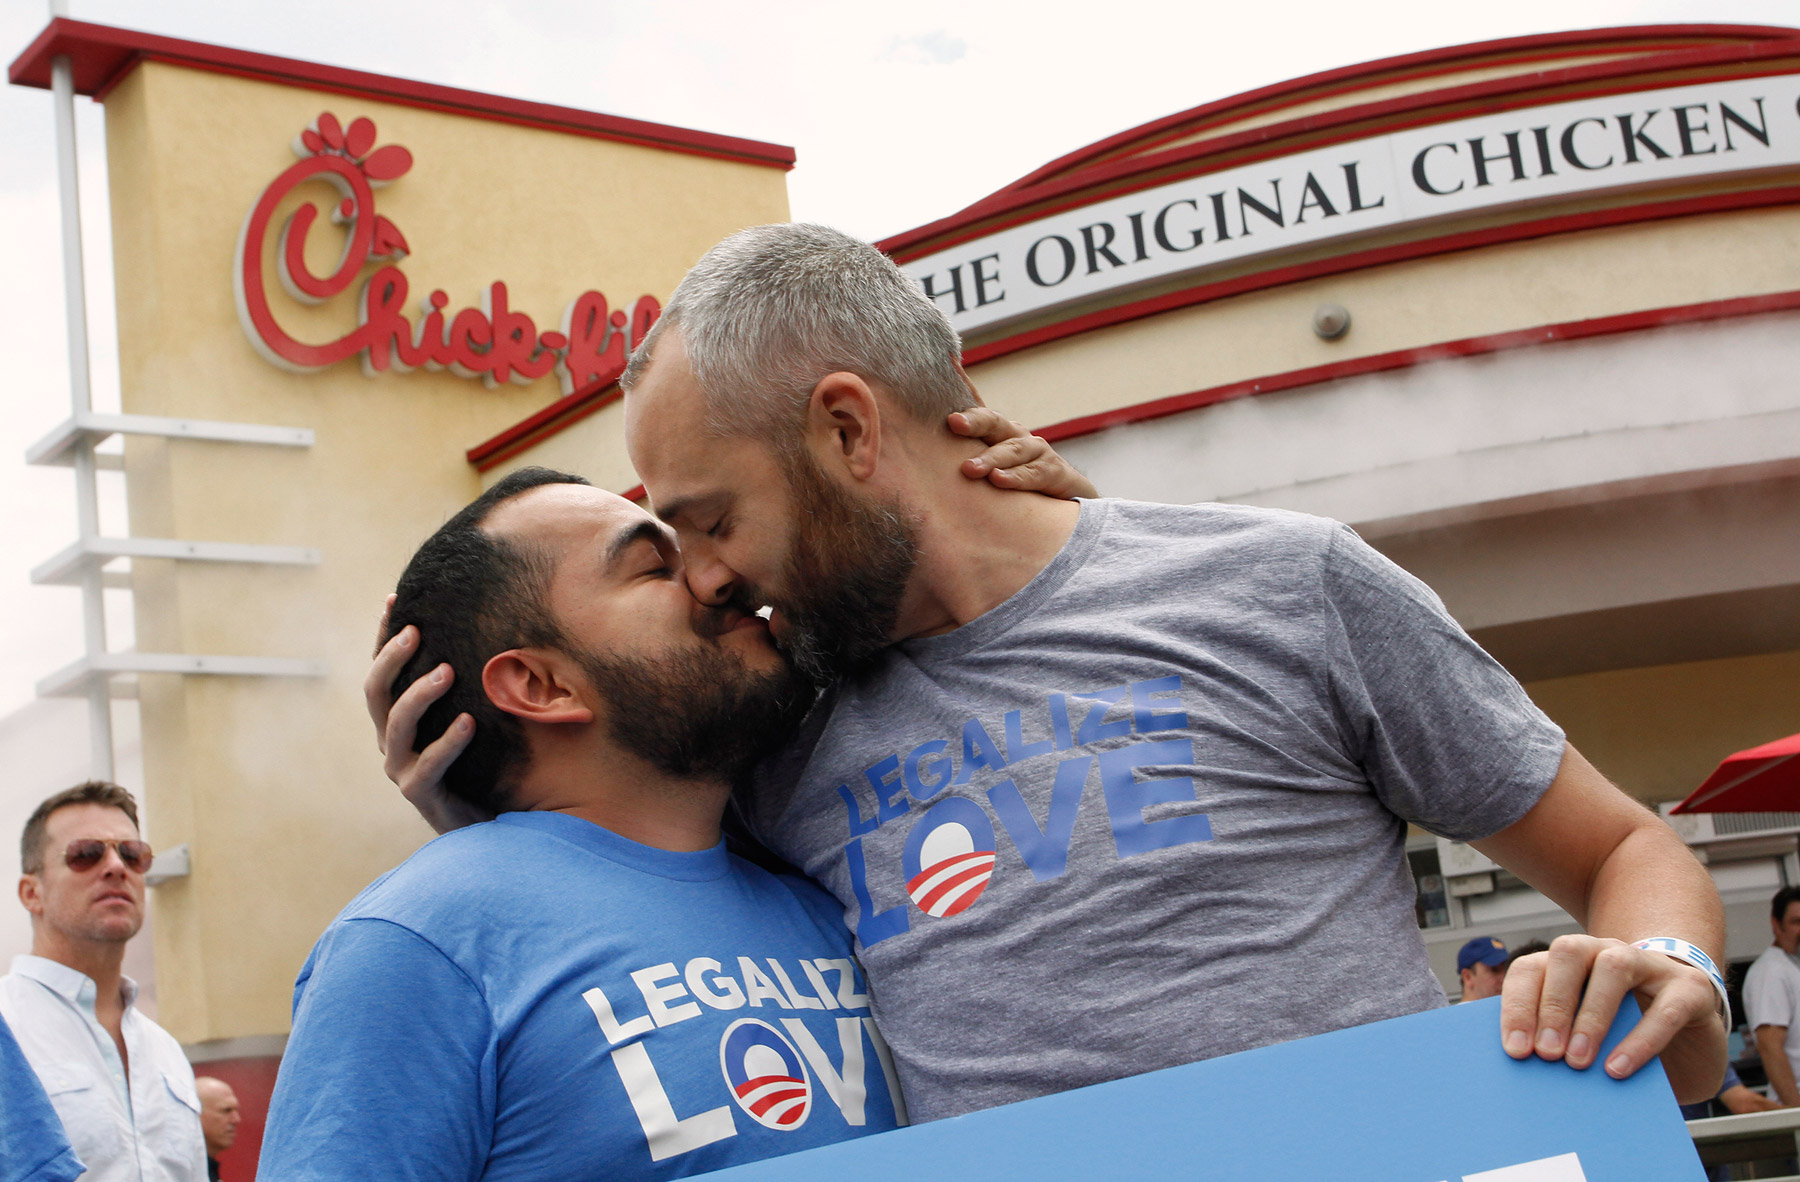 Eduardo Cisneros,left, and Luke Montgomery kiss on national  kiss-in  day at a Chick-fil-A restaurant in Hollywood, California, August 3, 2012.